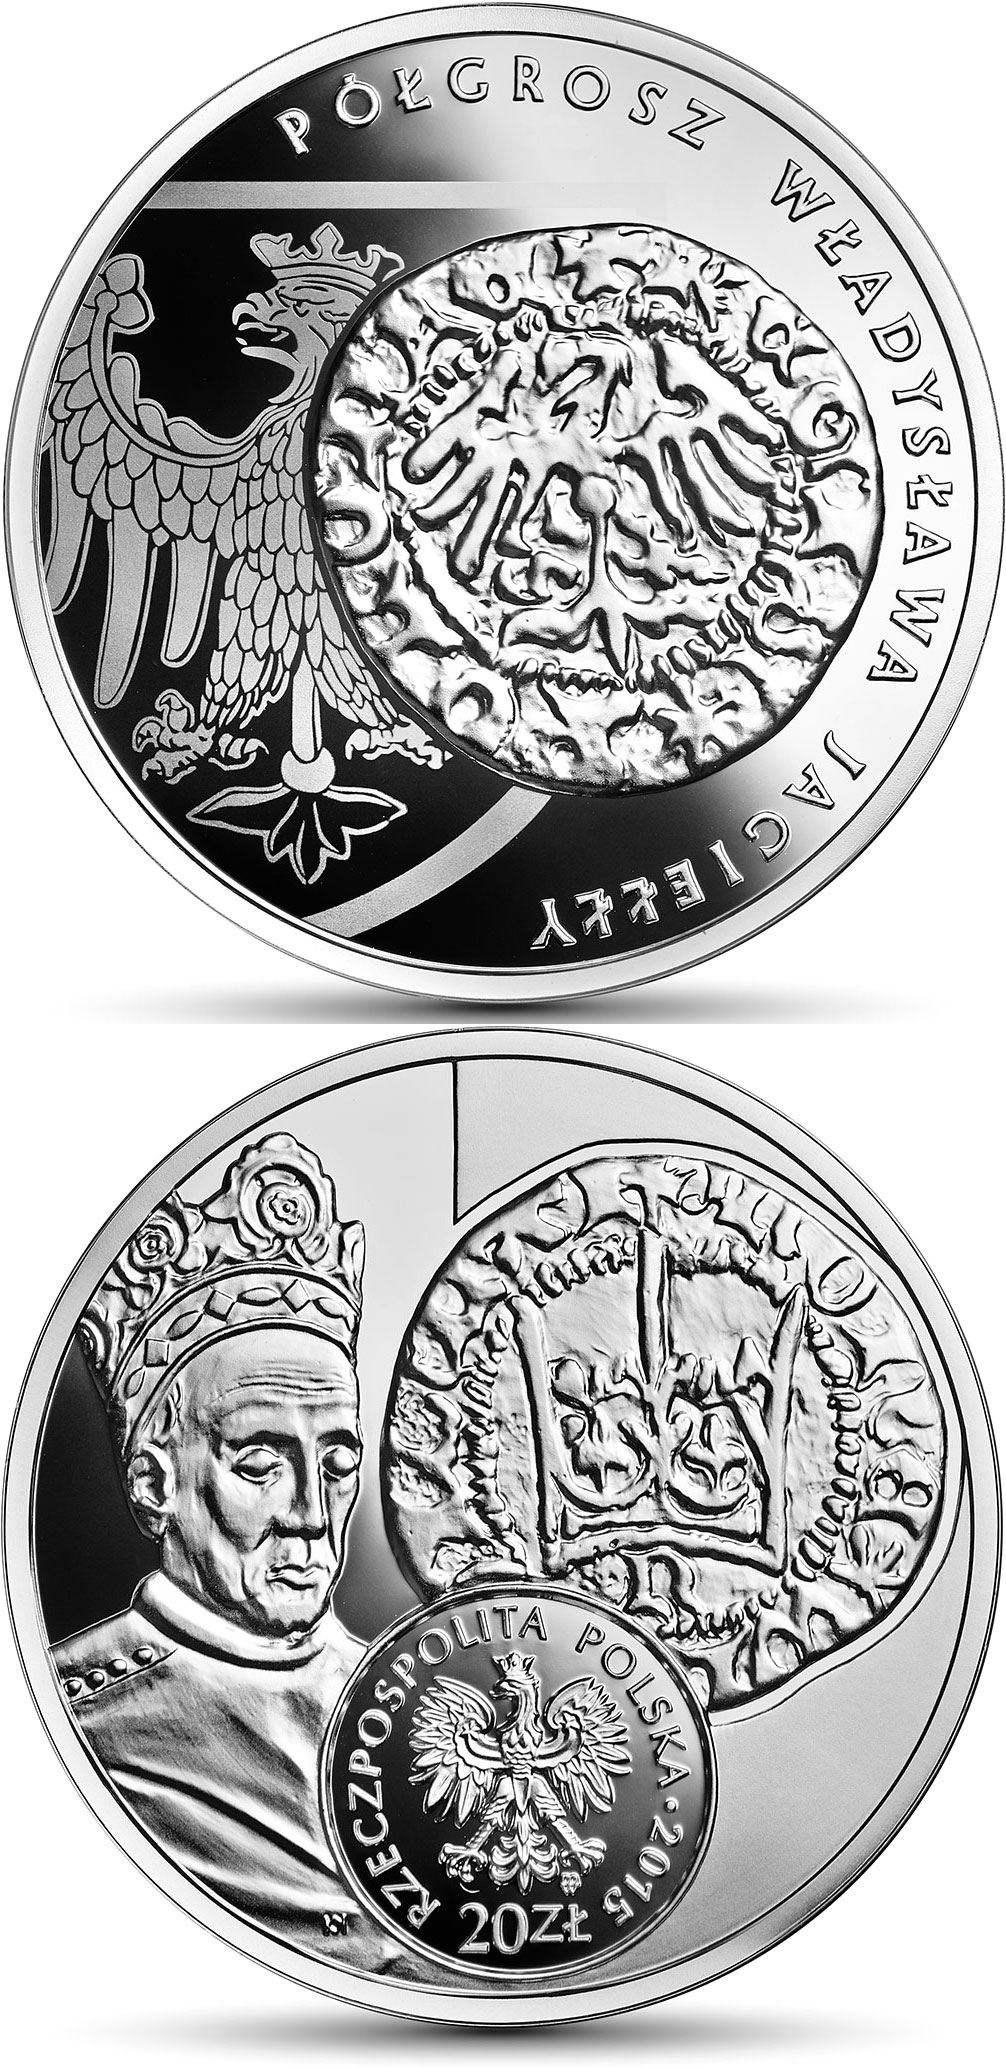 Image of The half grosz of Ladislas Jagiello  – 20 zloty coin Poland 2015.  The Silver coin is of BU quality.